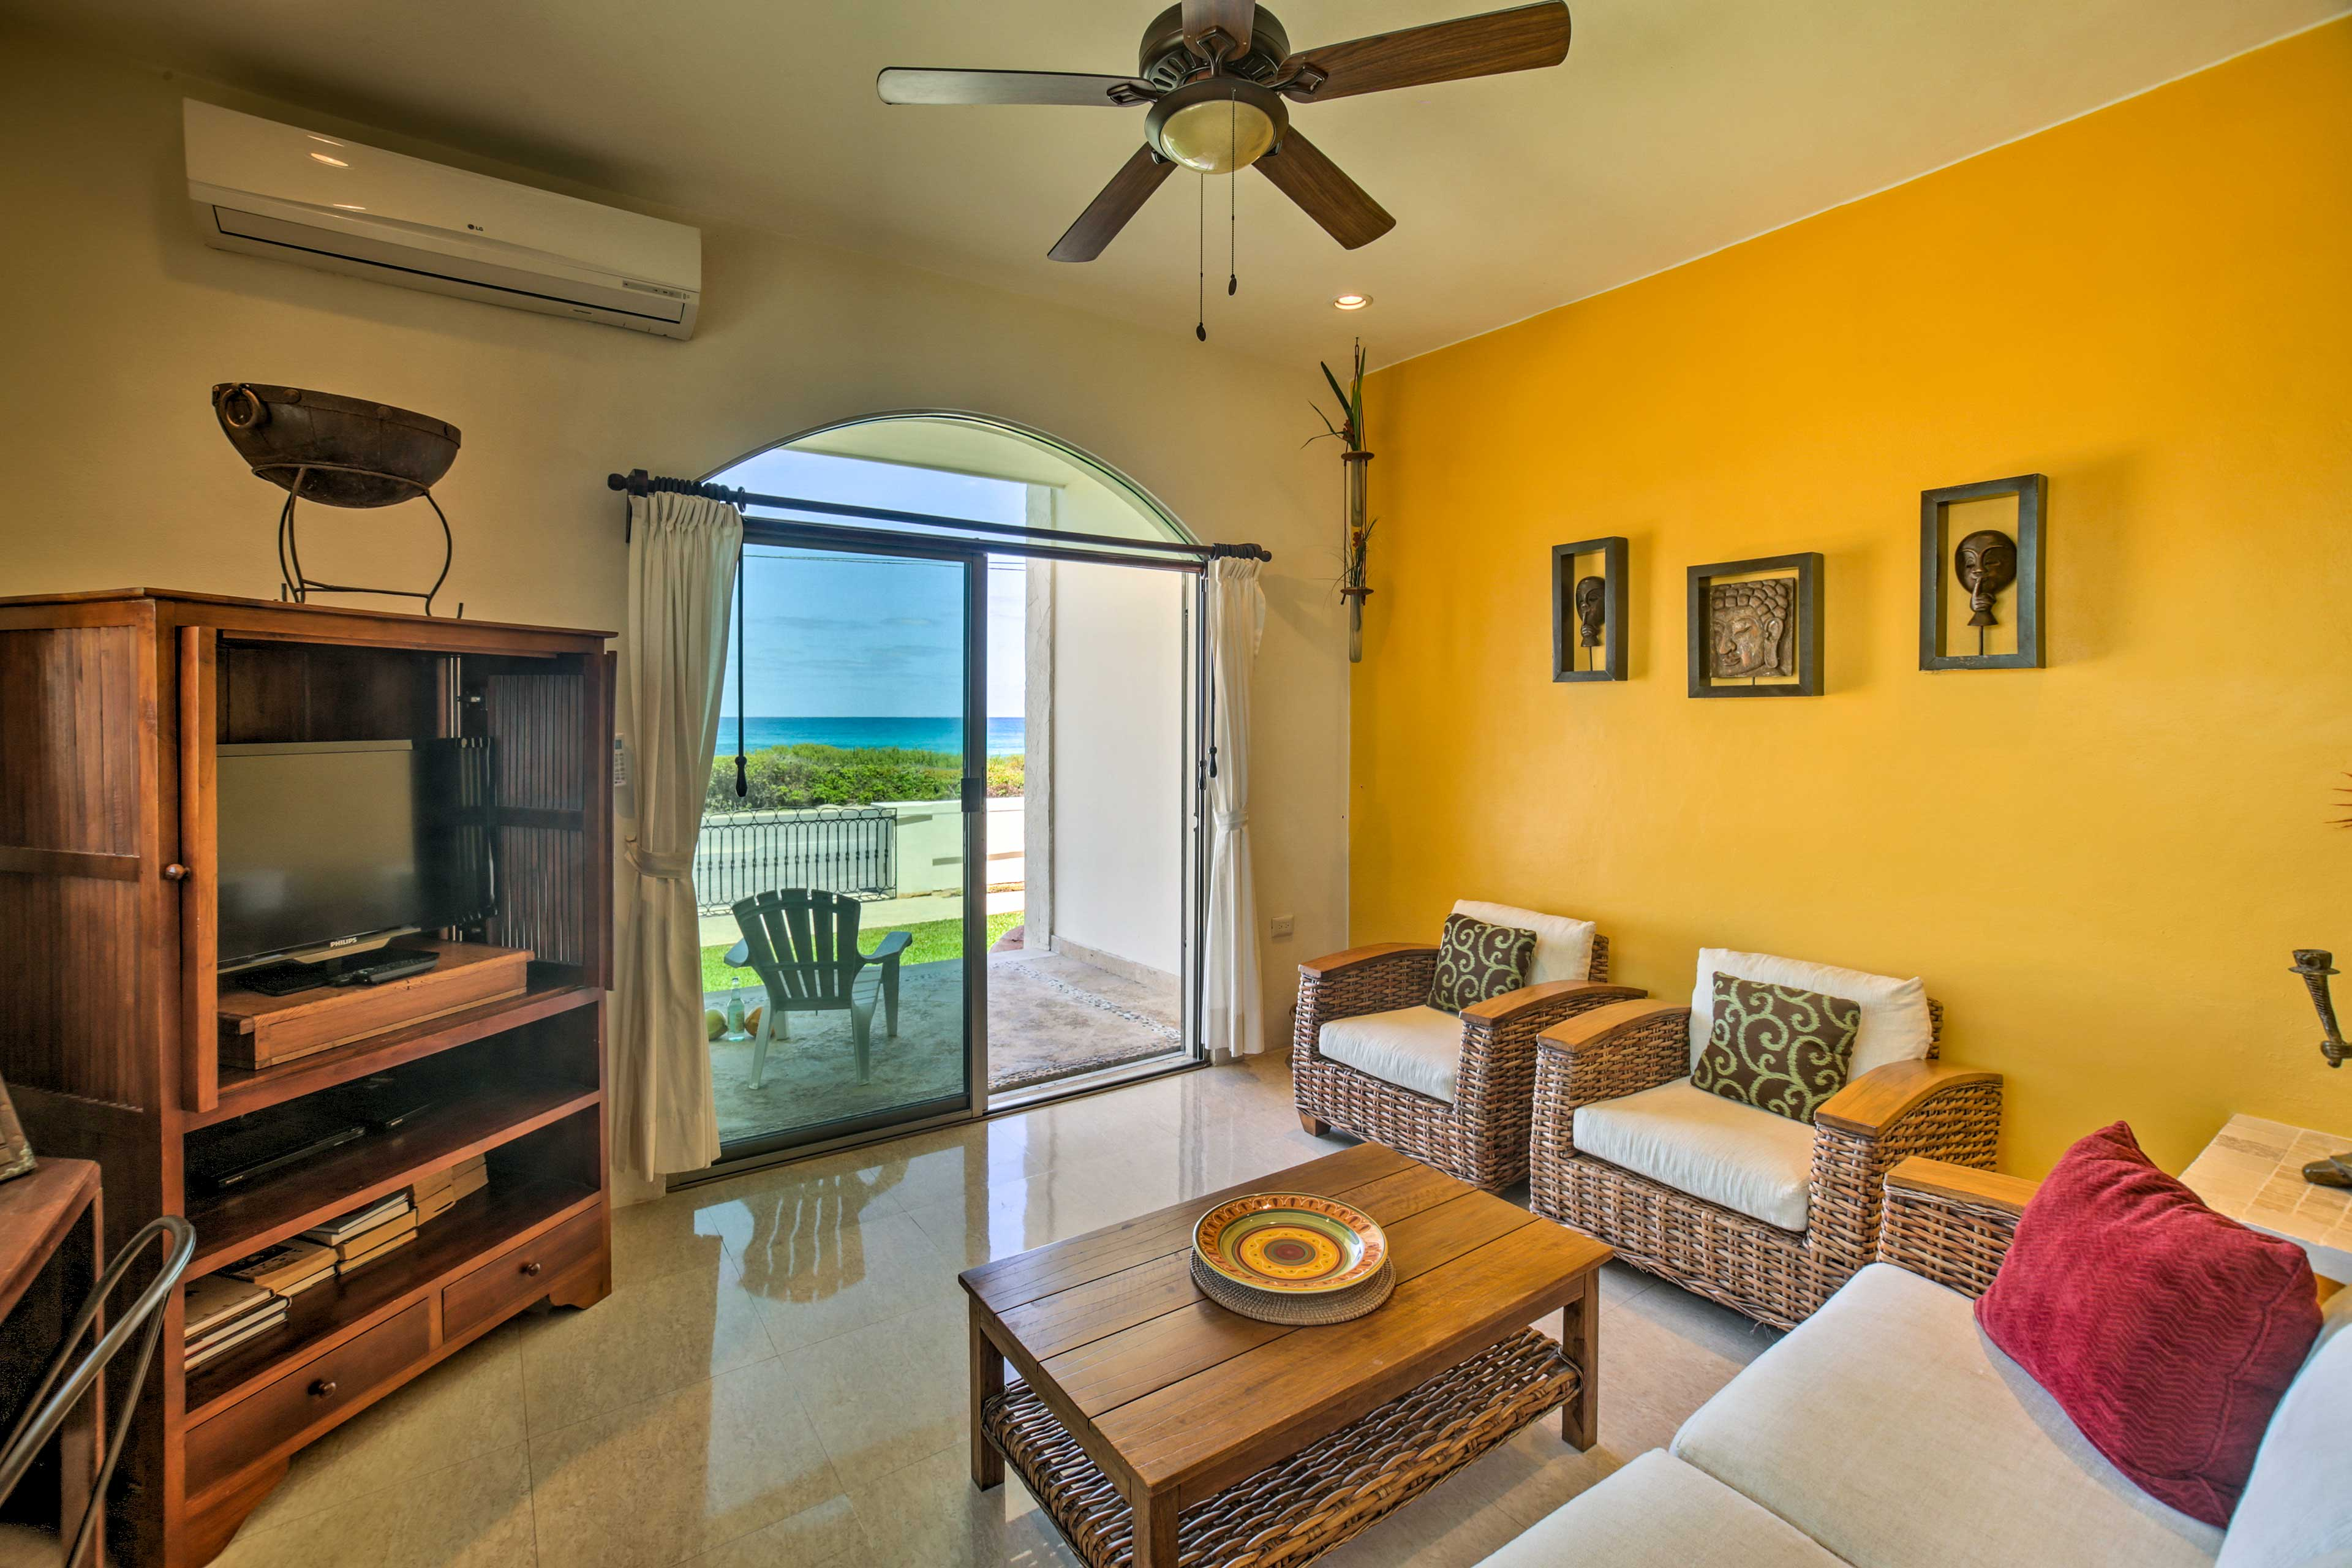 The interior of this casita is vibrantly painted.